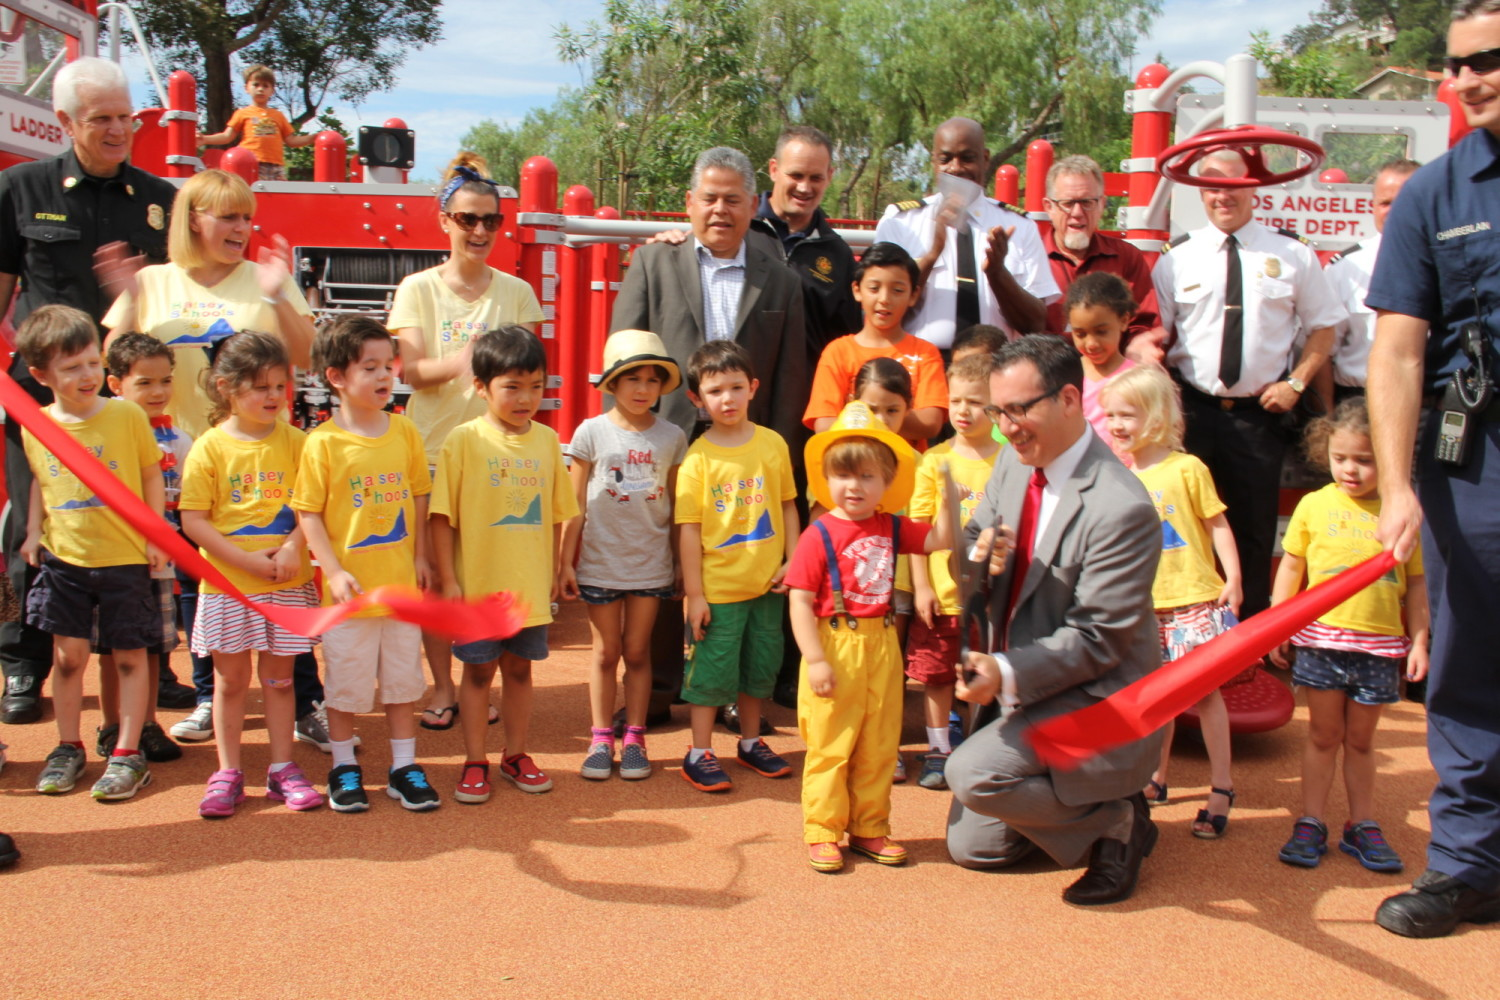 Constanso Ave Fire Station 84 Park's ribbon cutting ceremony on July 2.